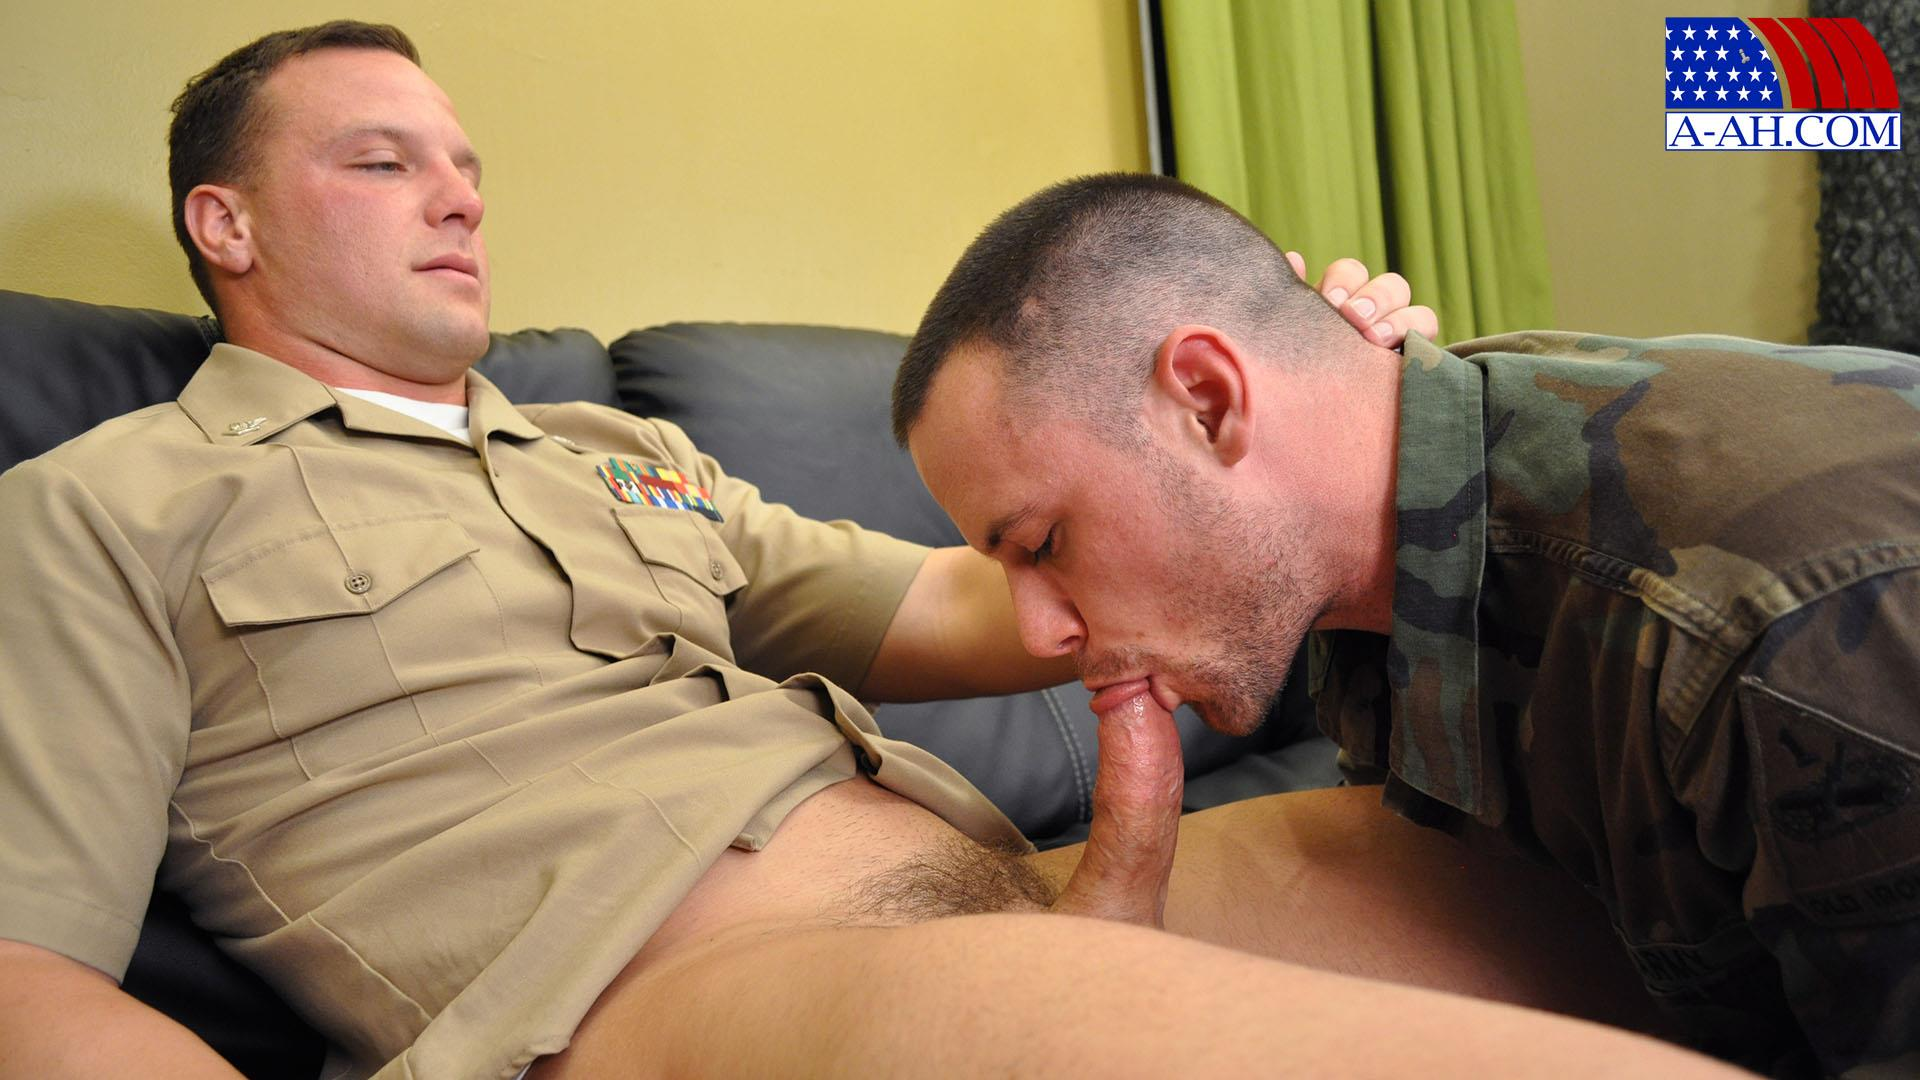 All-American-Heroes-NAVY-CORPSMAN-LOGAN-FUCKS-SERGEANT-MILES-Military-Guys-Fucking-Bareback-Amateur-Gay-Porn-04 Real US Navy Corpsman Barebacking A US Army Sergeant